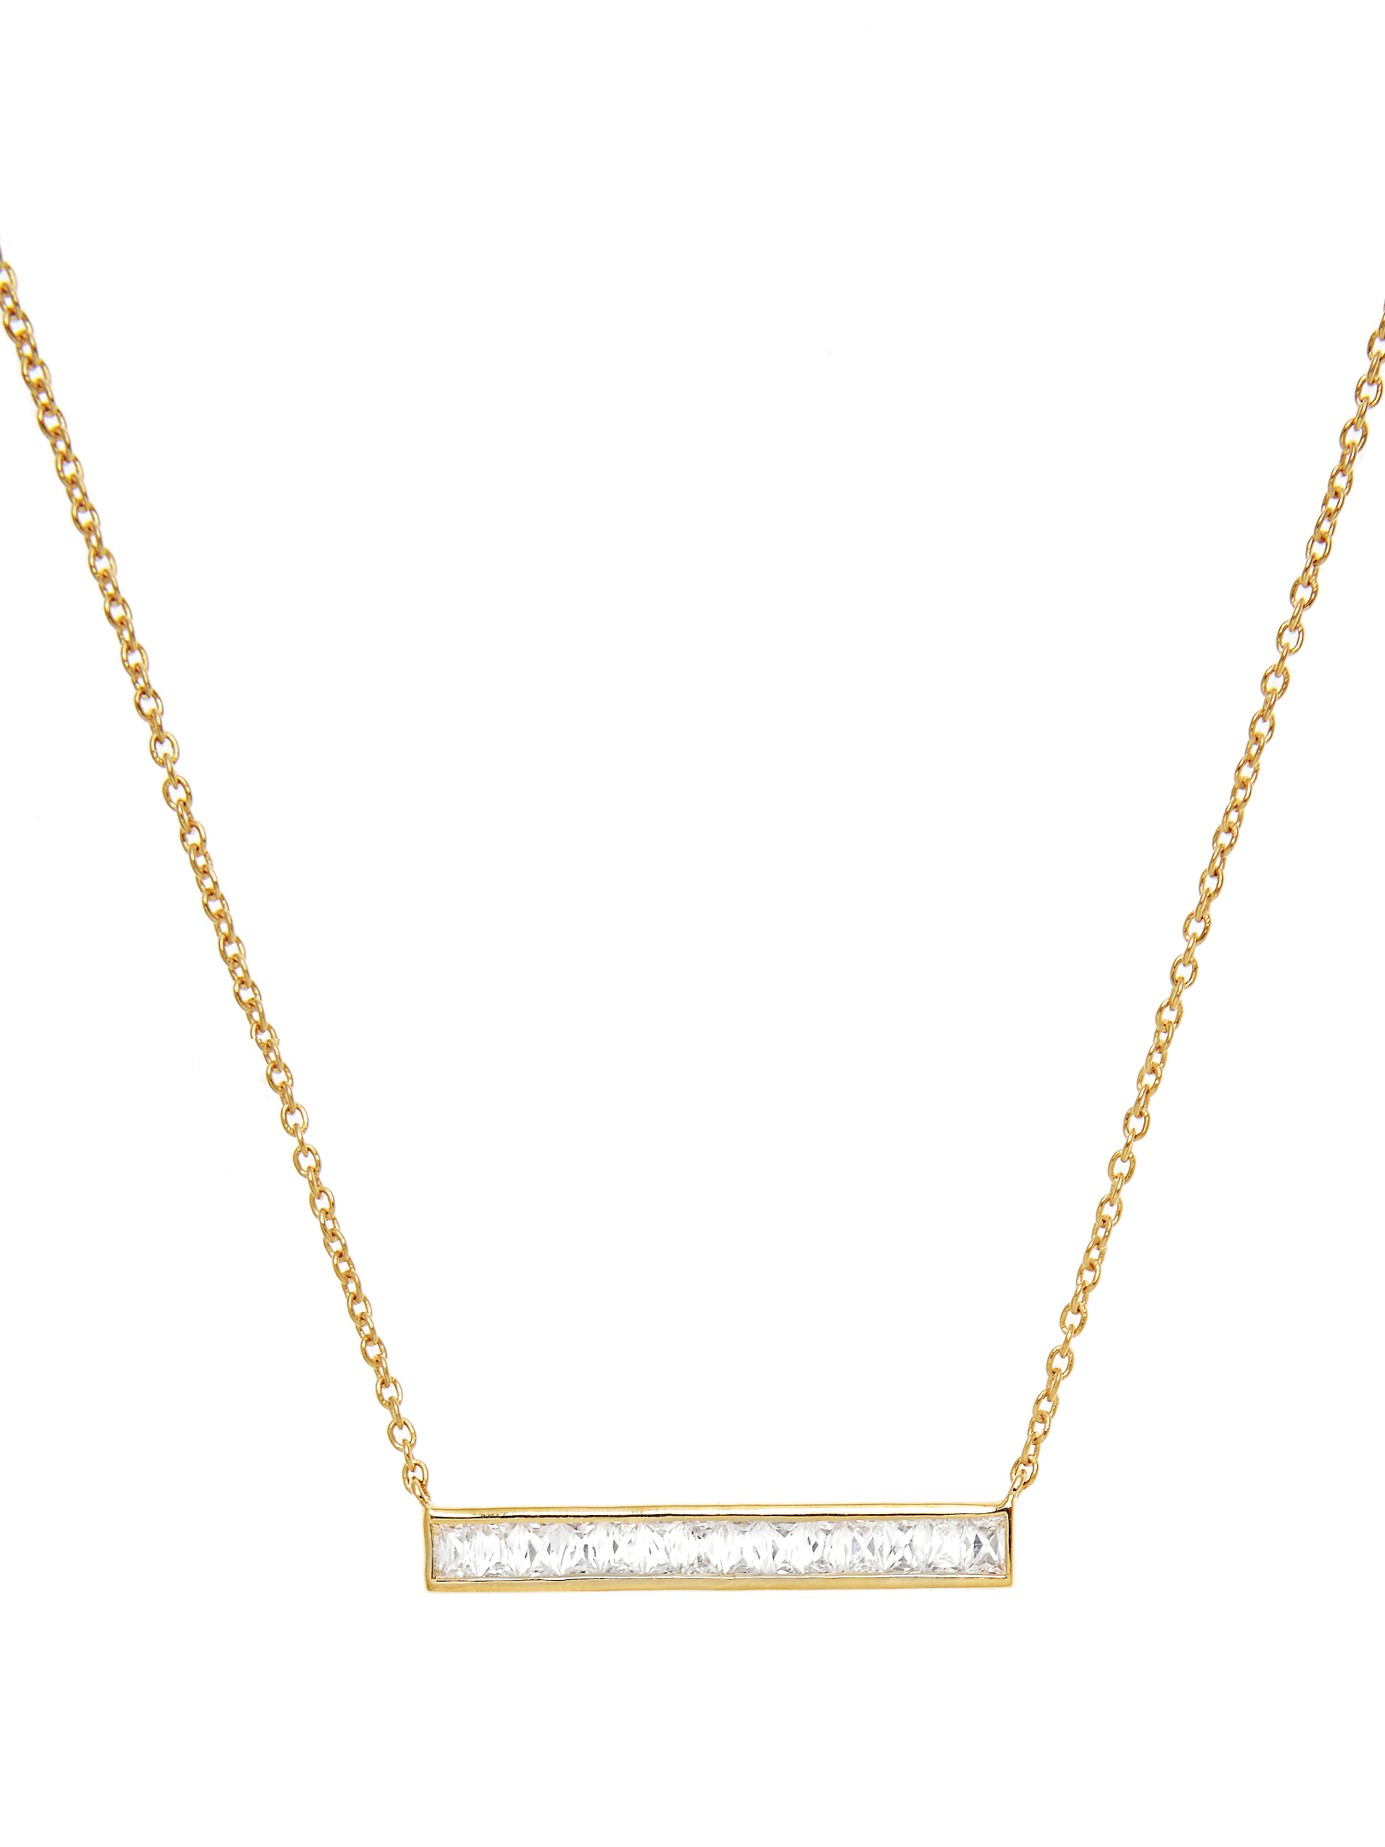 Theodora Warre Zircon And Gold-plated Necklace in Metallic